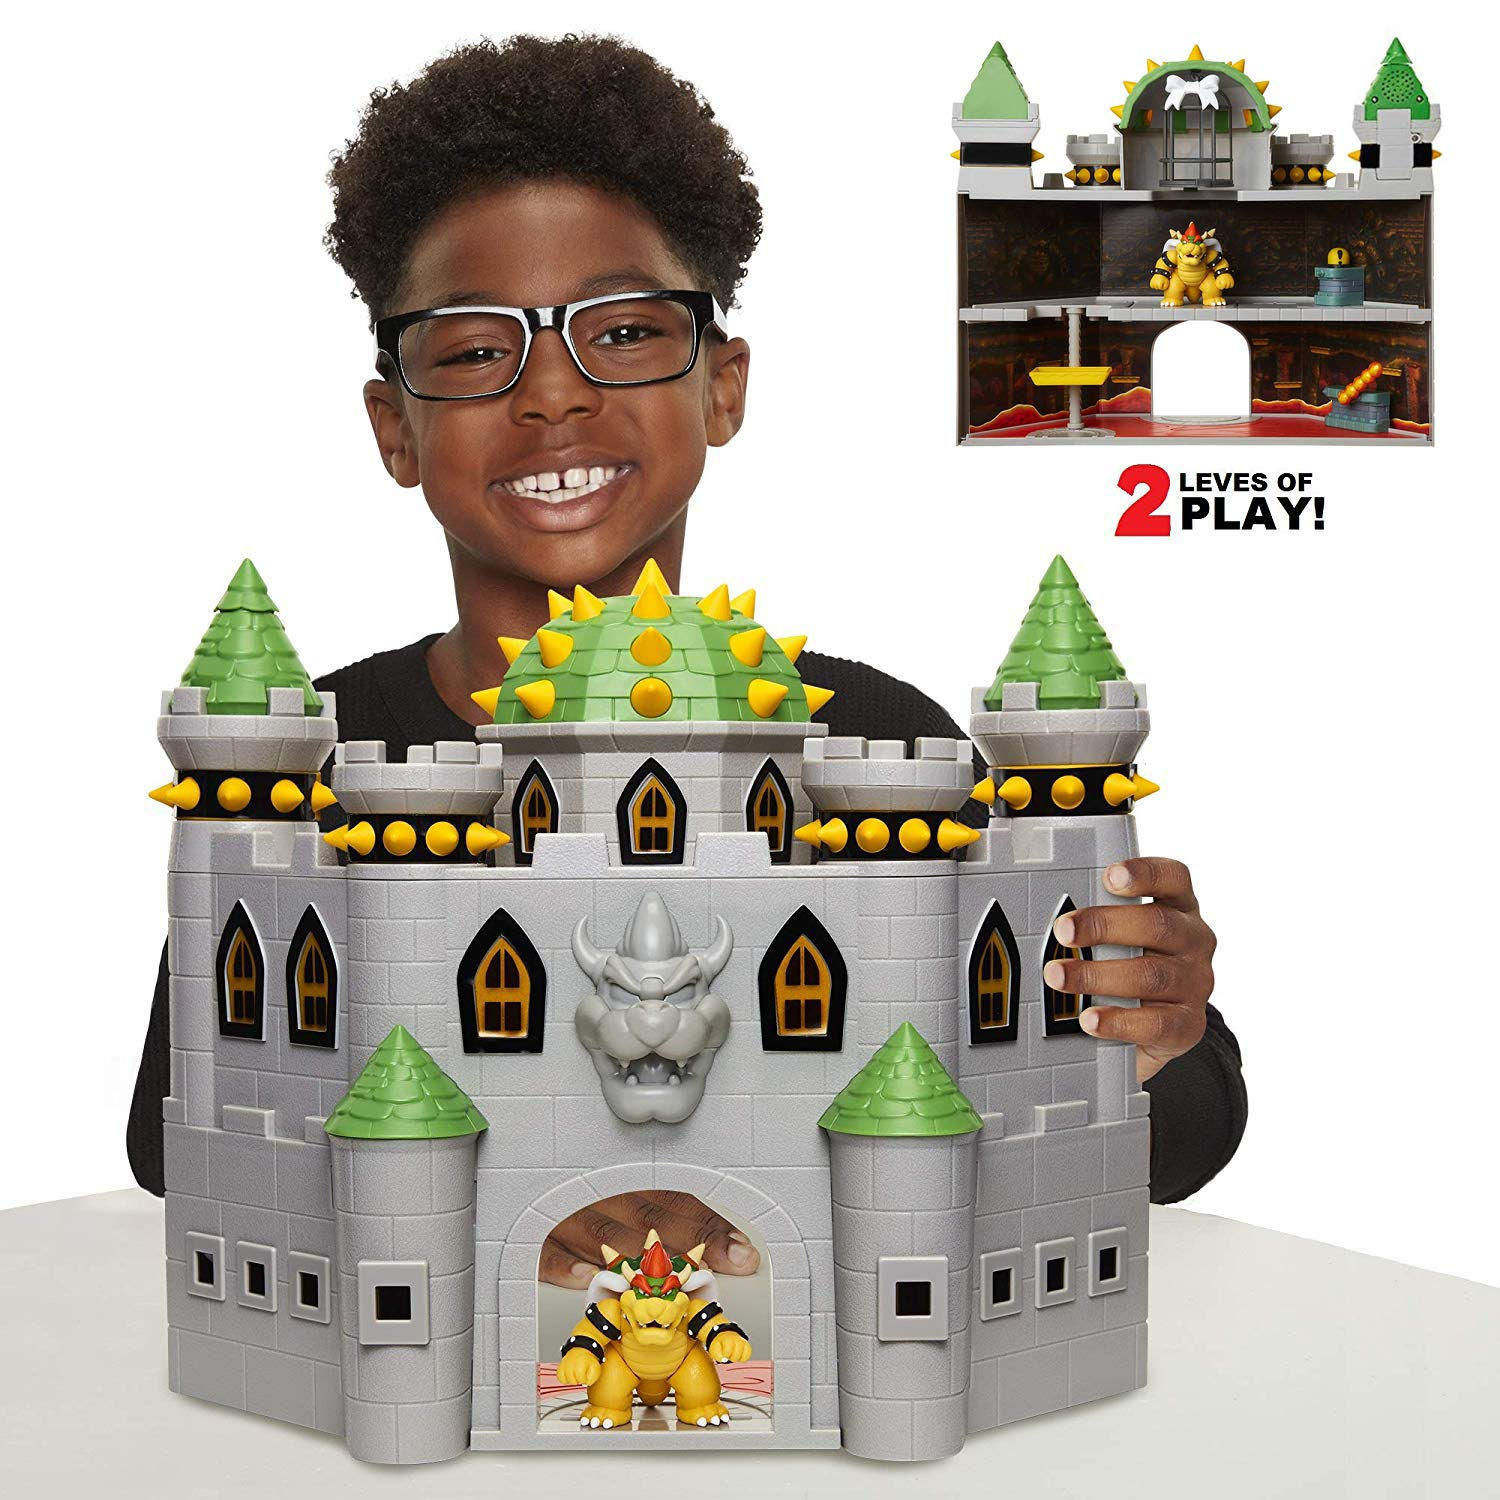 Nintendo Bowser's Castle Super Mario Deluxe Bowser's Castle Playset with 2.5'' Exclusive Articulated Bowser Action Figure, Interactive Play Set with Authentic in-Game Sounds by Nintendo